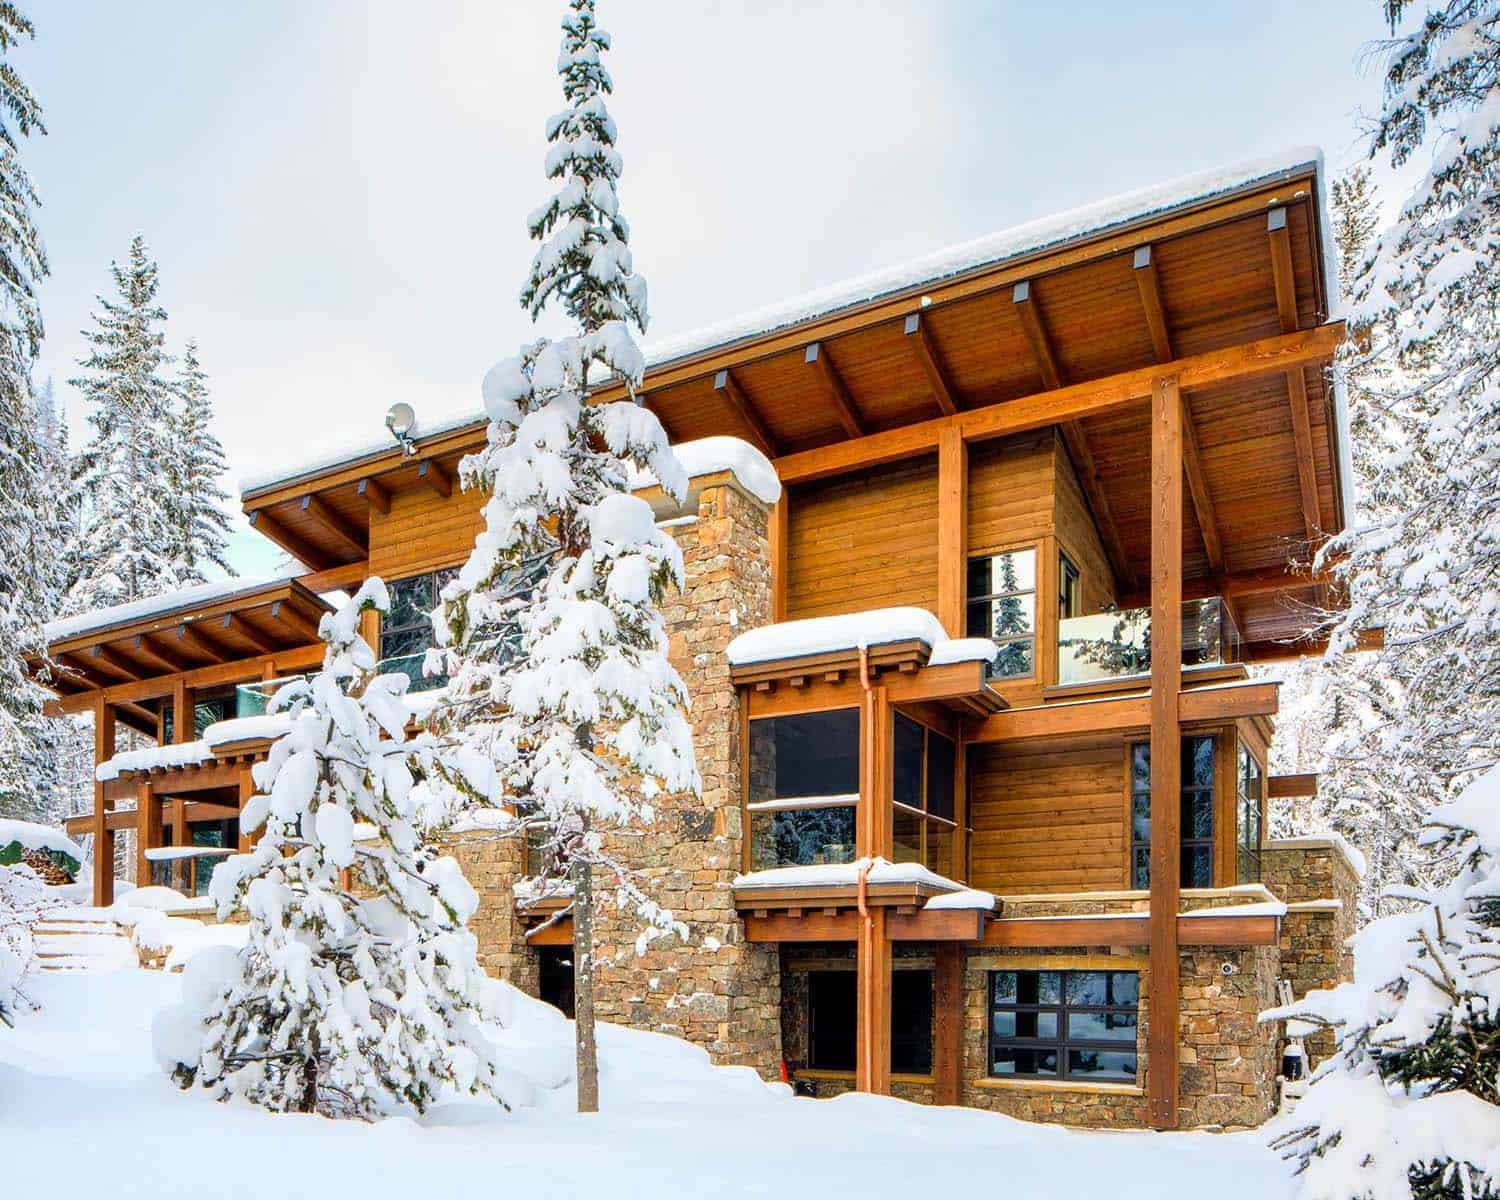 modern-mountain-retreat-mckinley-burkart-01-1-kindesign